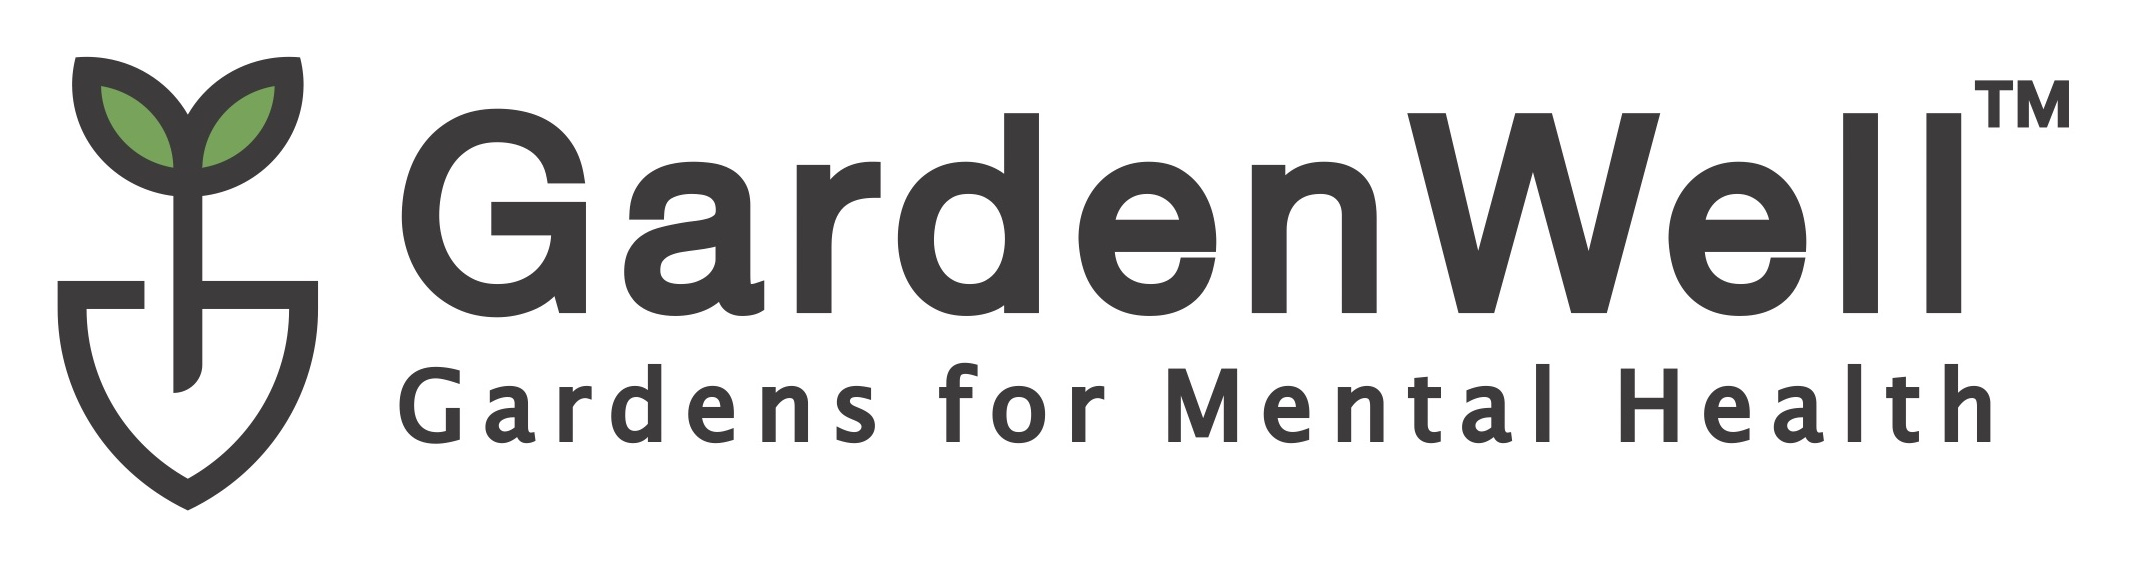 GardenWell™ Gardens for Mental Health.jpg